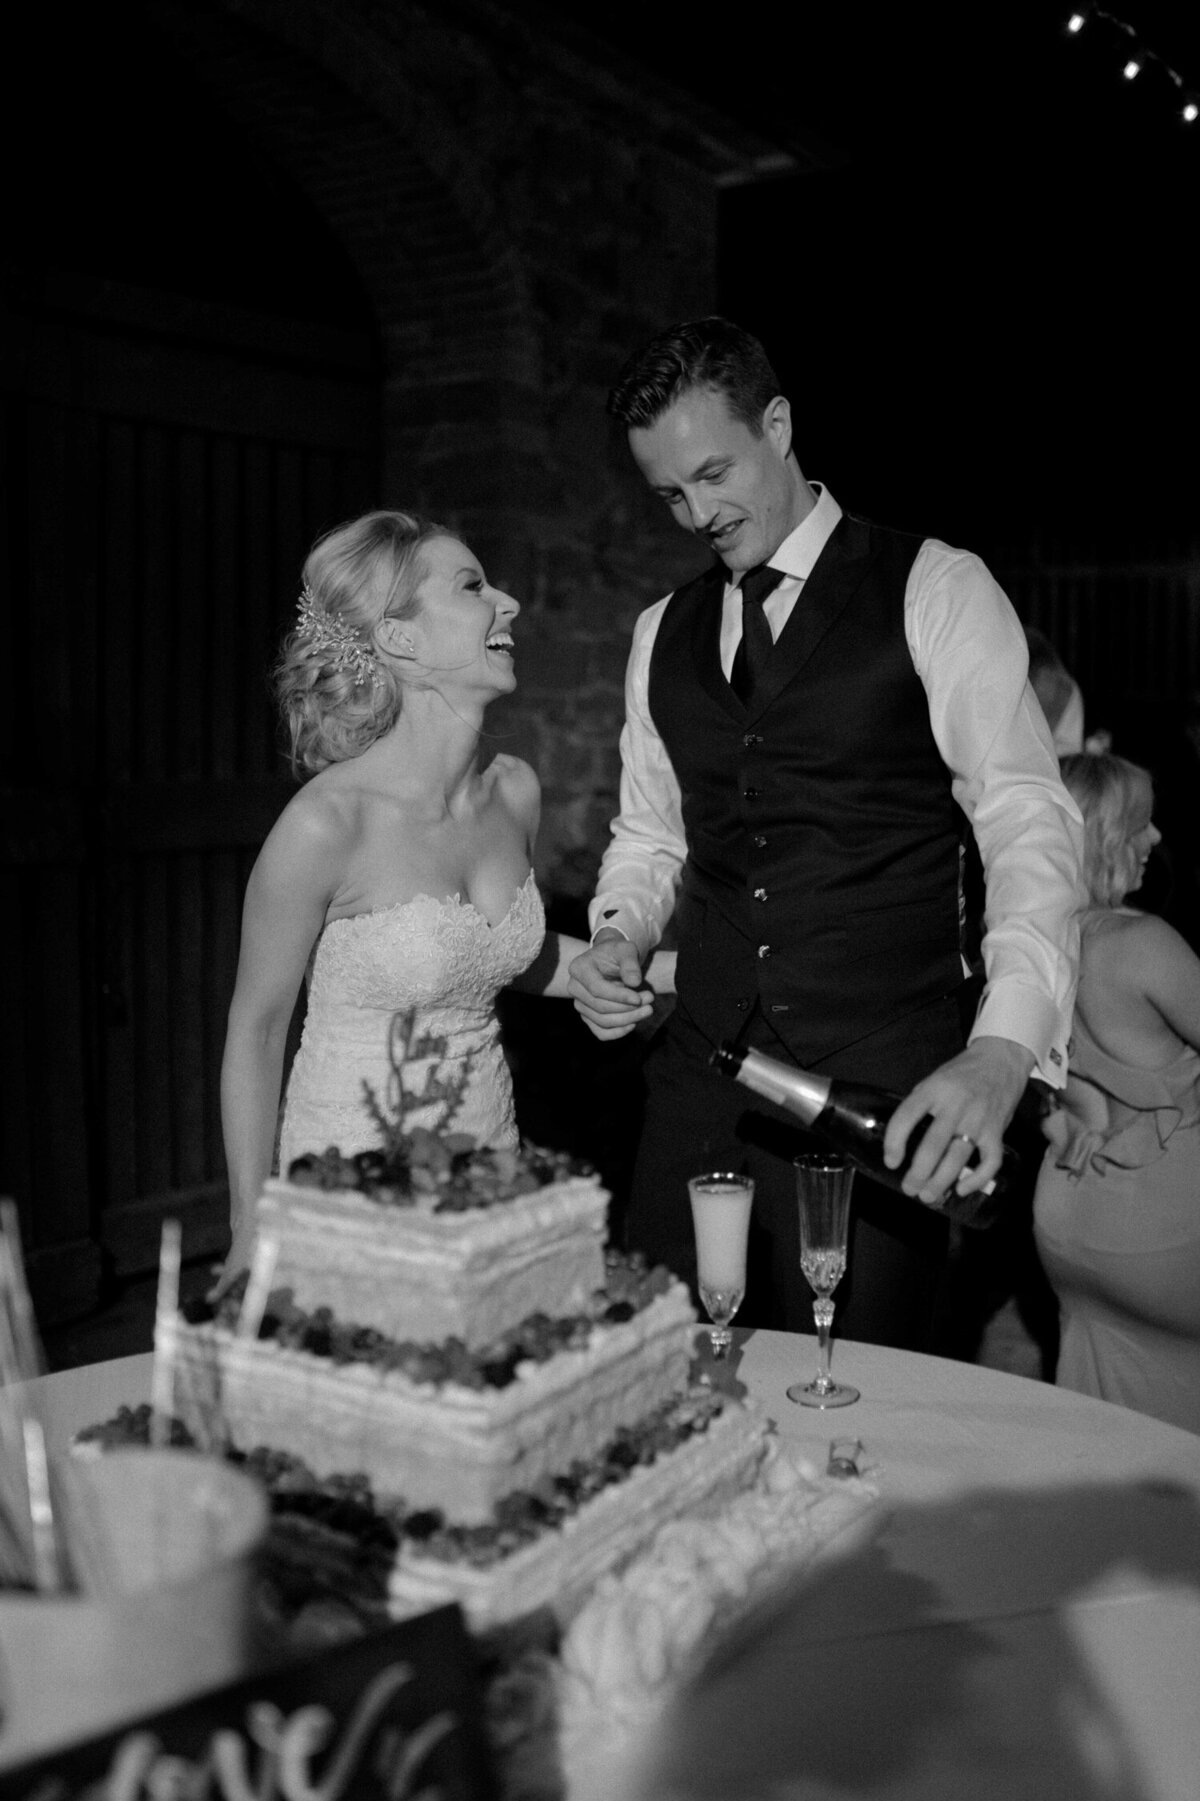 180_Tuscany_Luxury_Wedding_Photographer (197 von 215)_So thankful to be a luxury destination wedding photographer in Tuscany! Claire and James invited their beloved family & friends from London to their luxury wedding in Tuscany.